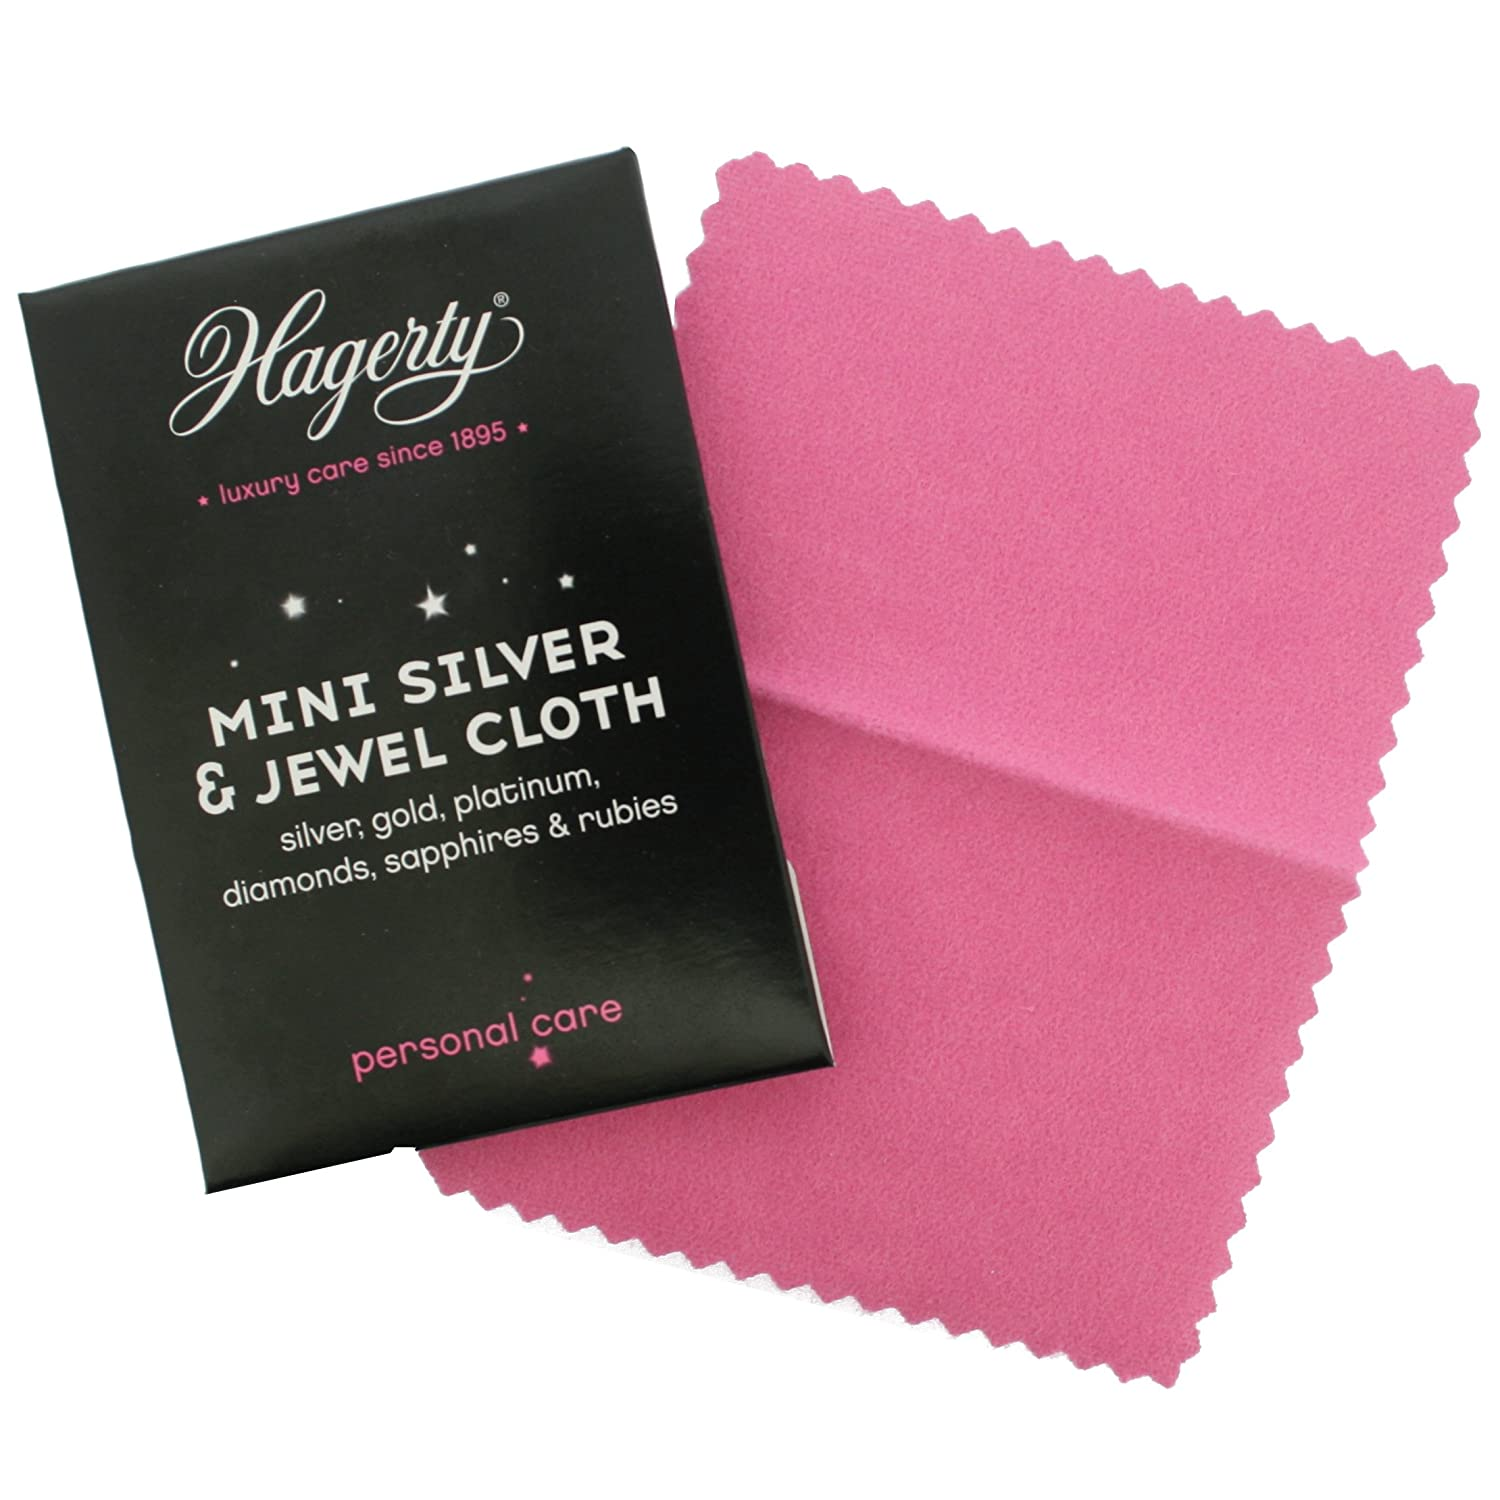 Hagerty Mini Jewellery Cleaning cloth gold & silver Mini cloth 7610928016286